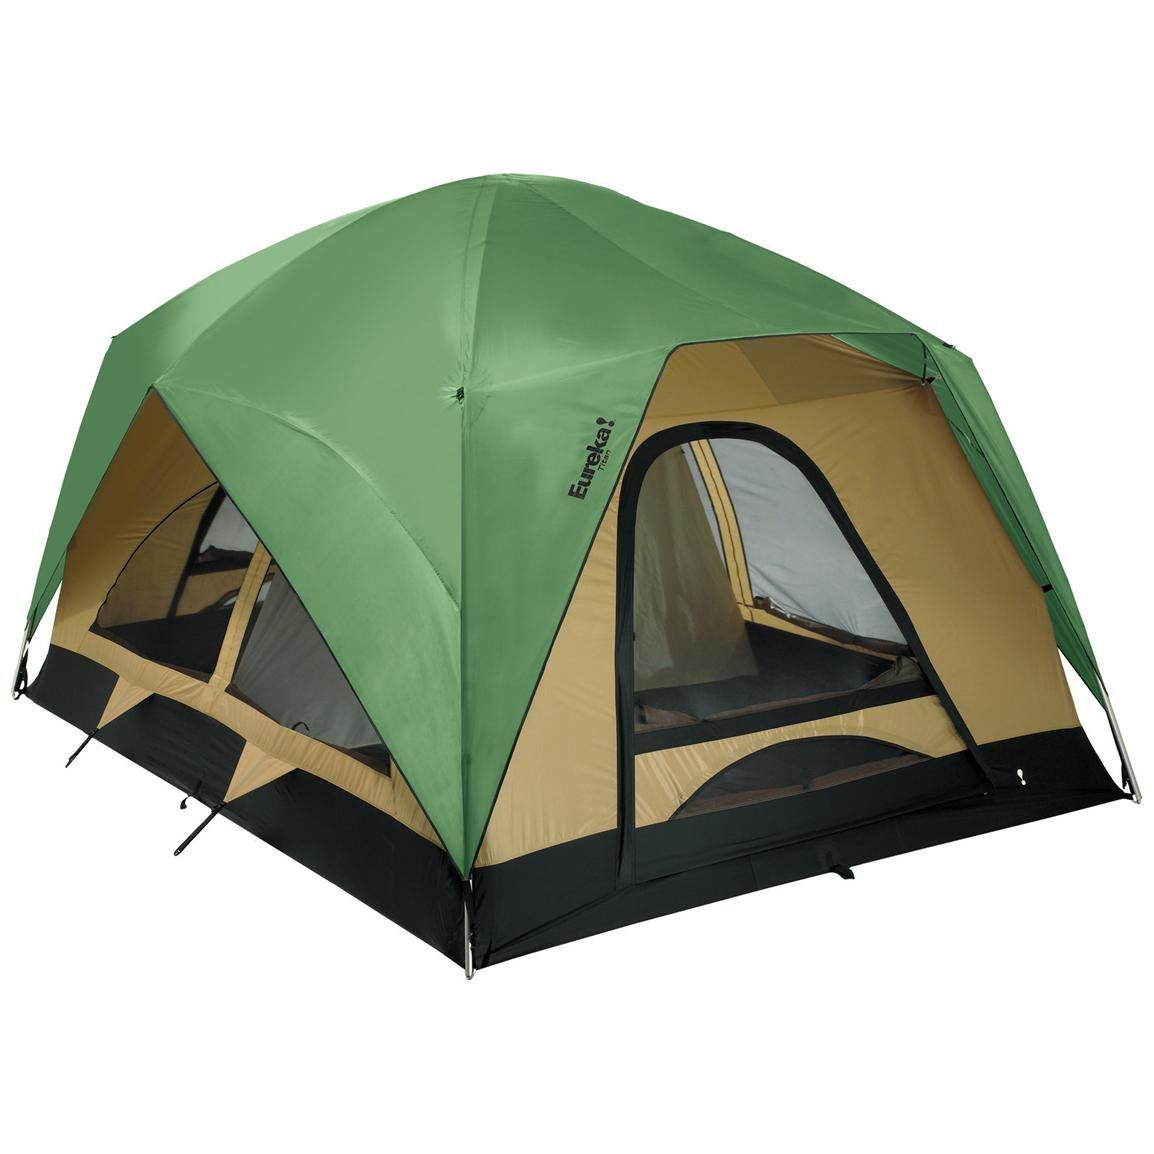 Sportsmanu0027s Guide has your Eureka!® Titan 8 - Person Tent available at a great price in our Cabin Tents collection  sc 1 st  Pinterest & Eureka!® Titan 8-Person Tent | CAMPING 101 | Pinterest | Tents ...